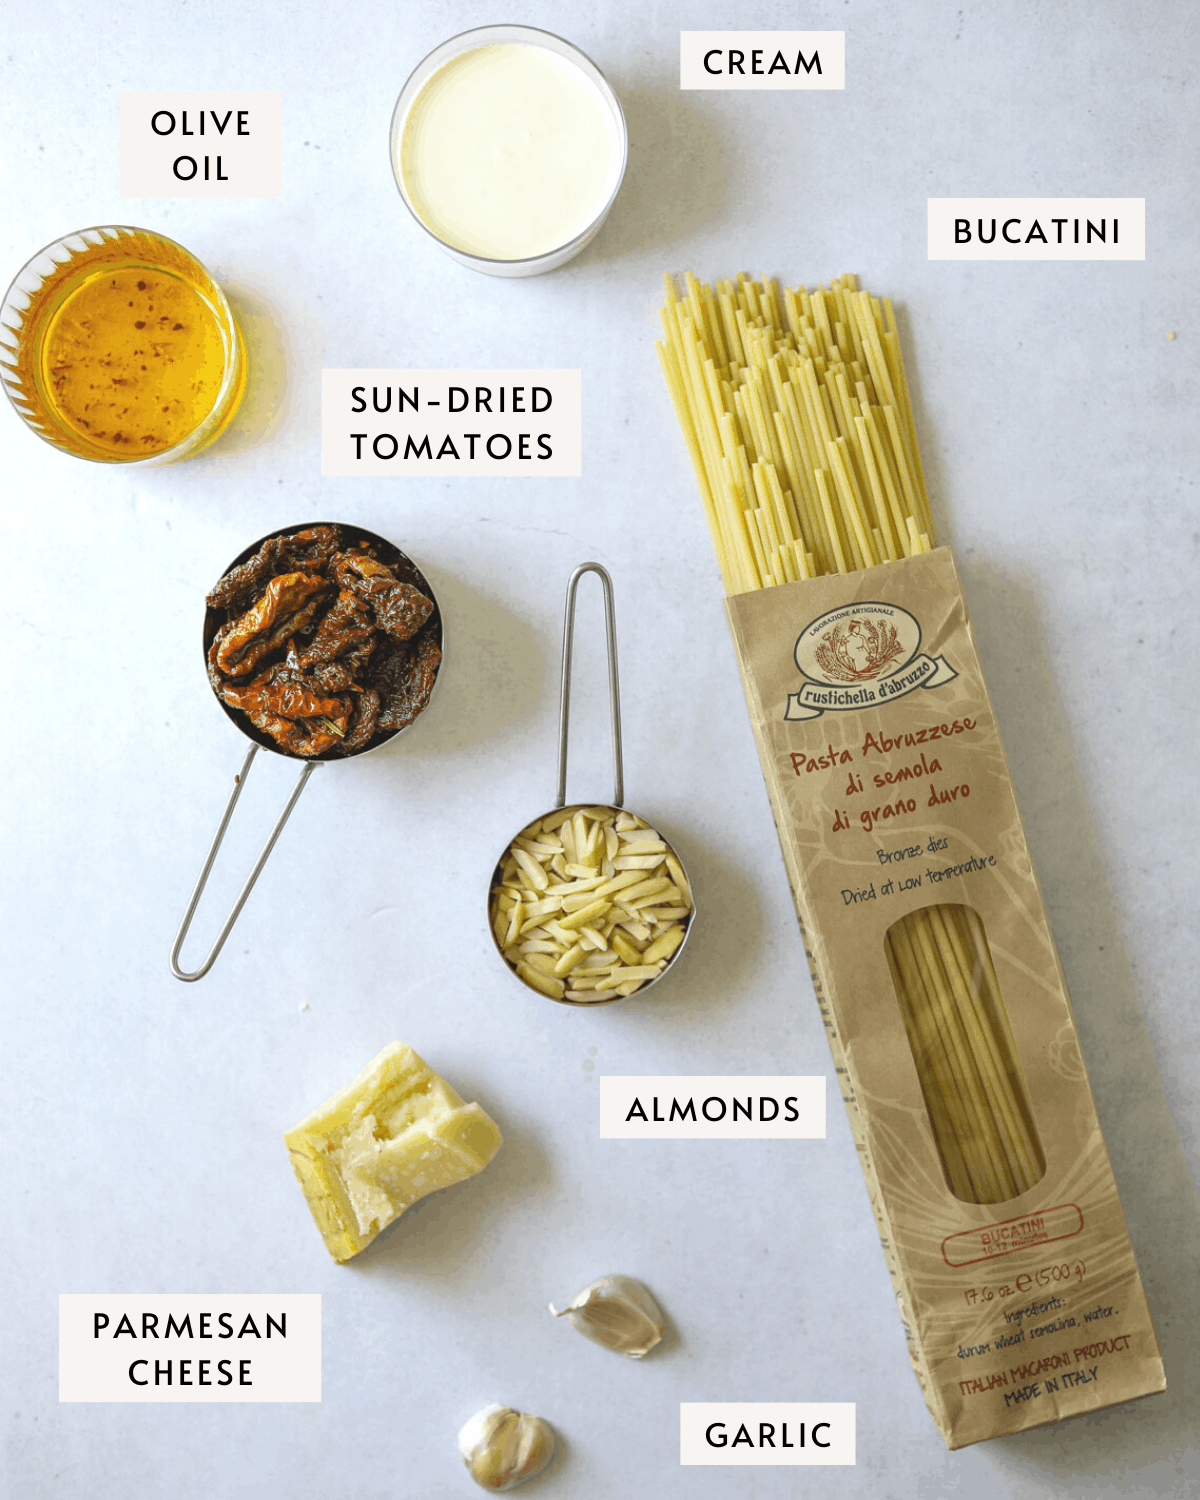 recipe ingredients individually portioned; bucatini pasta, sun-dried tomatoes, olive oil, parmesan cheese, cream and garlic